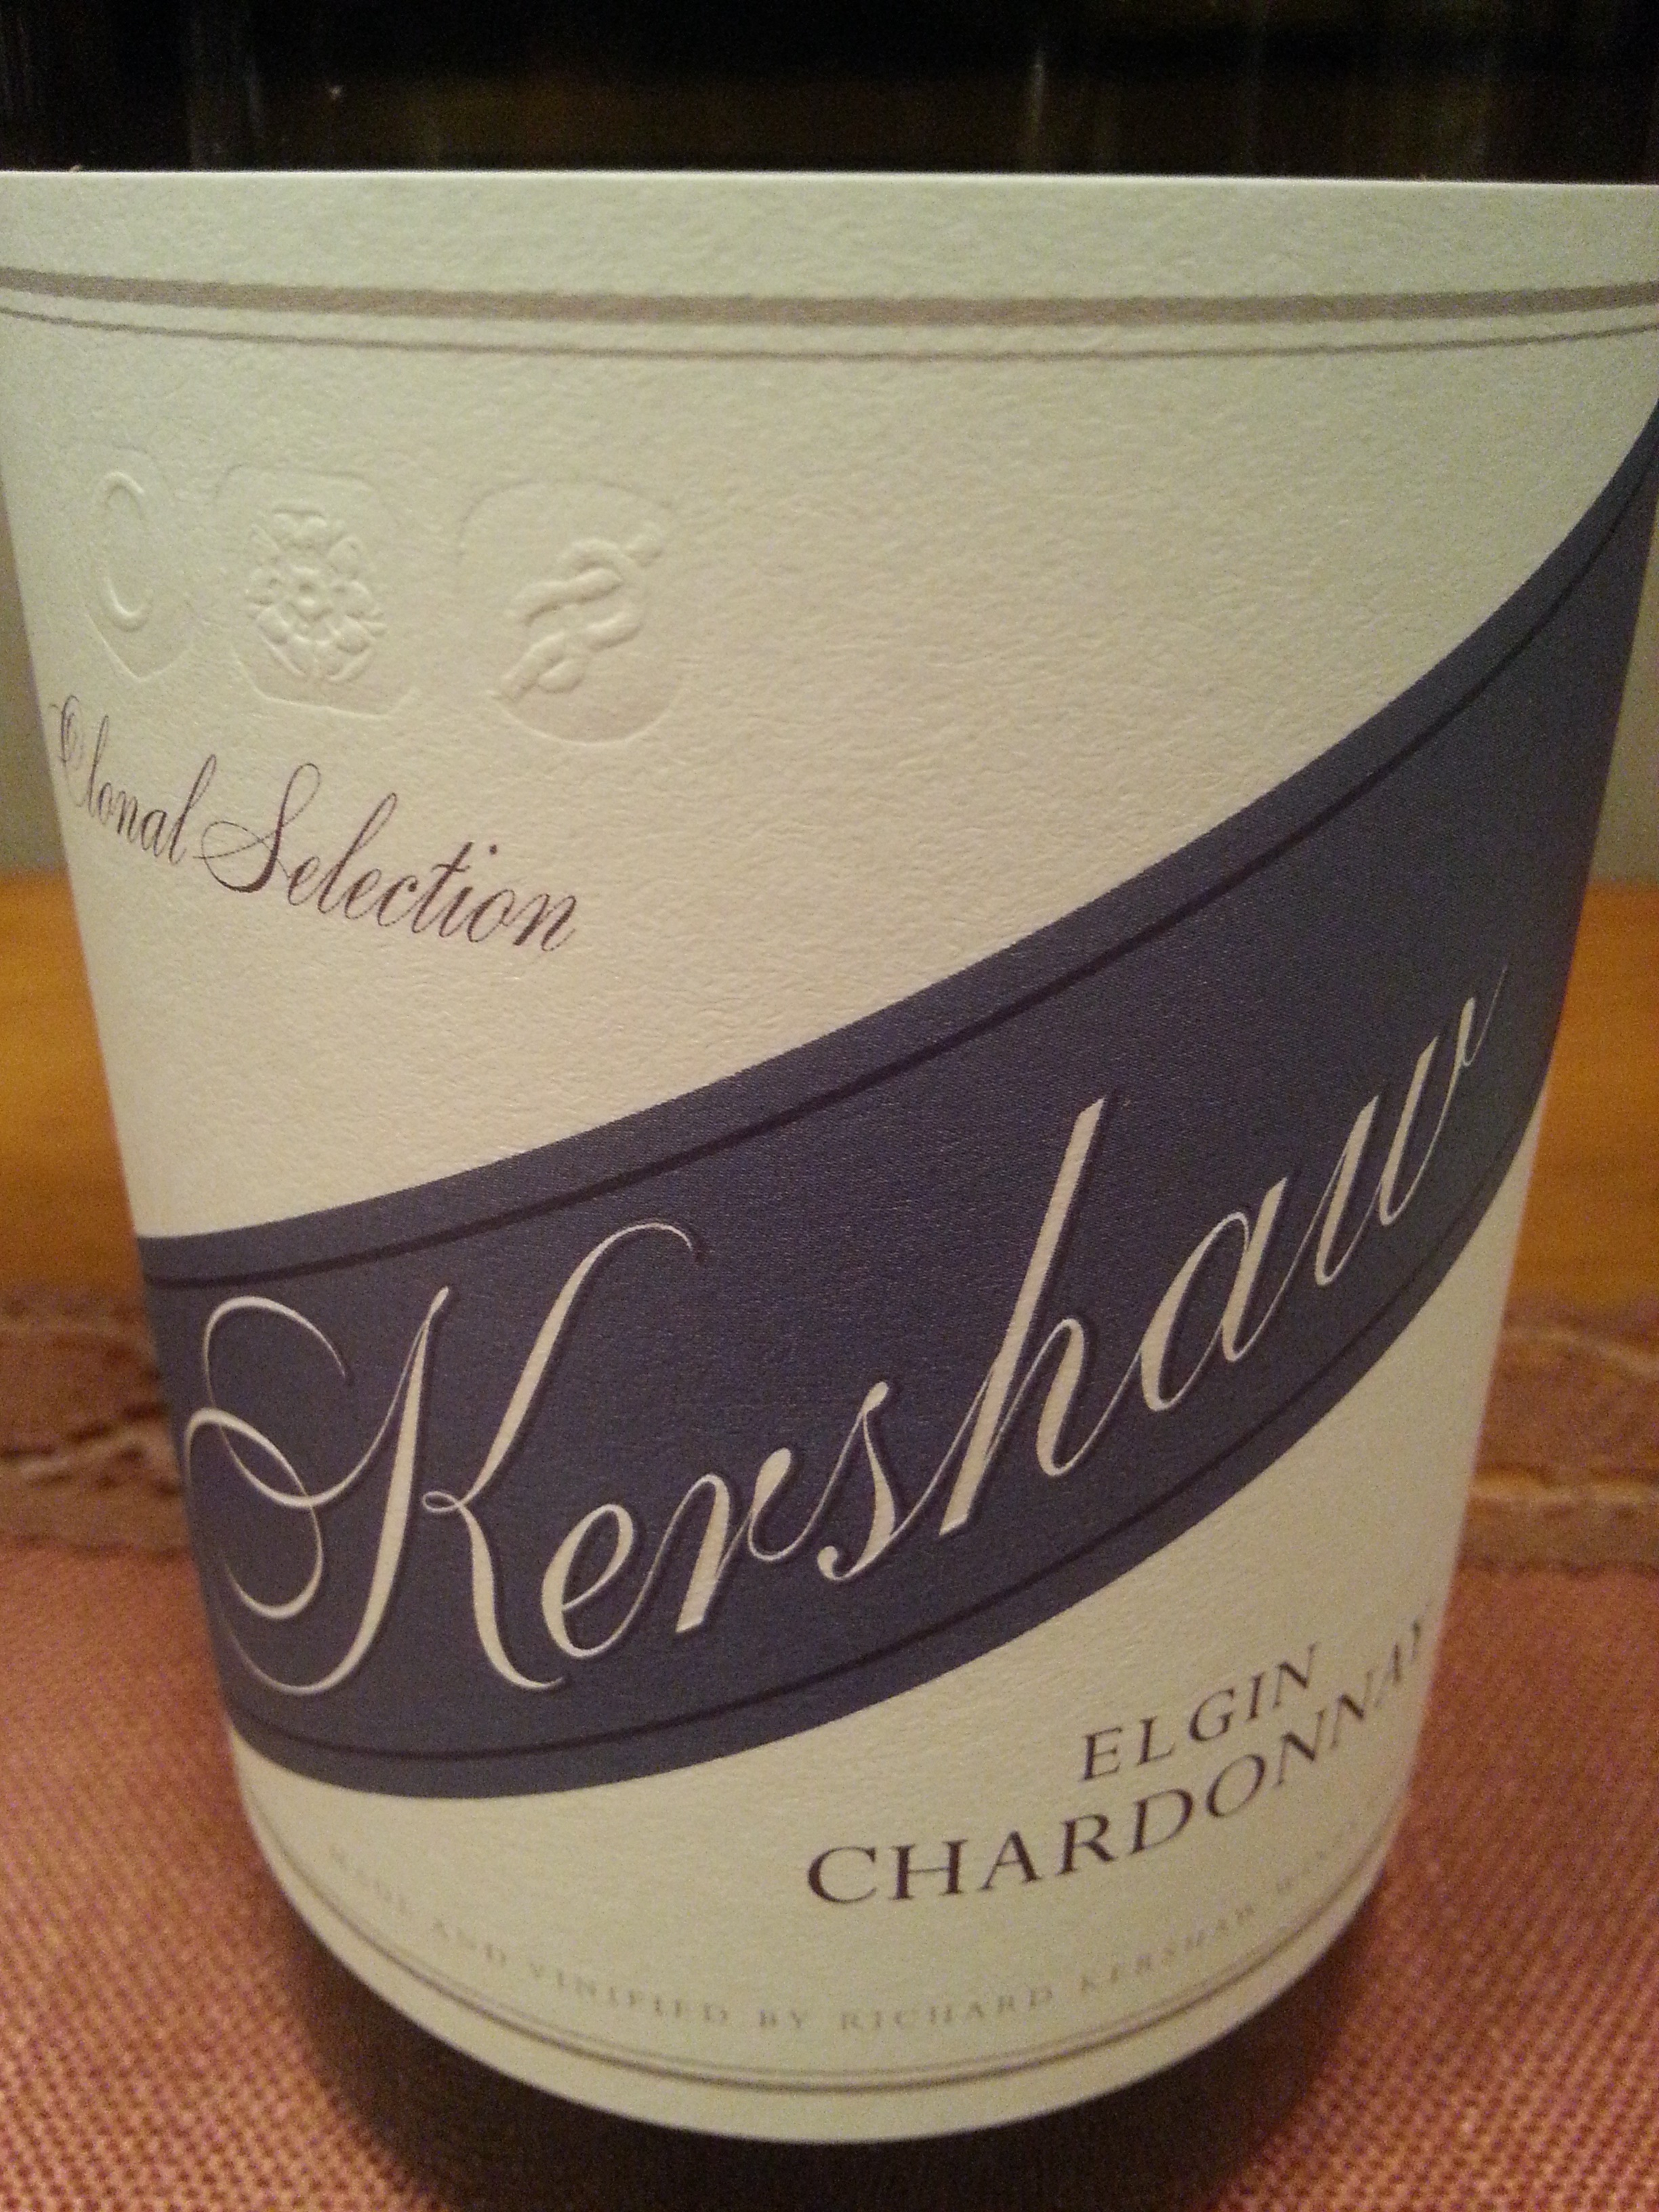 2015 Chardonnay Clonal Selection | Kershaw